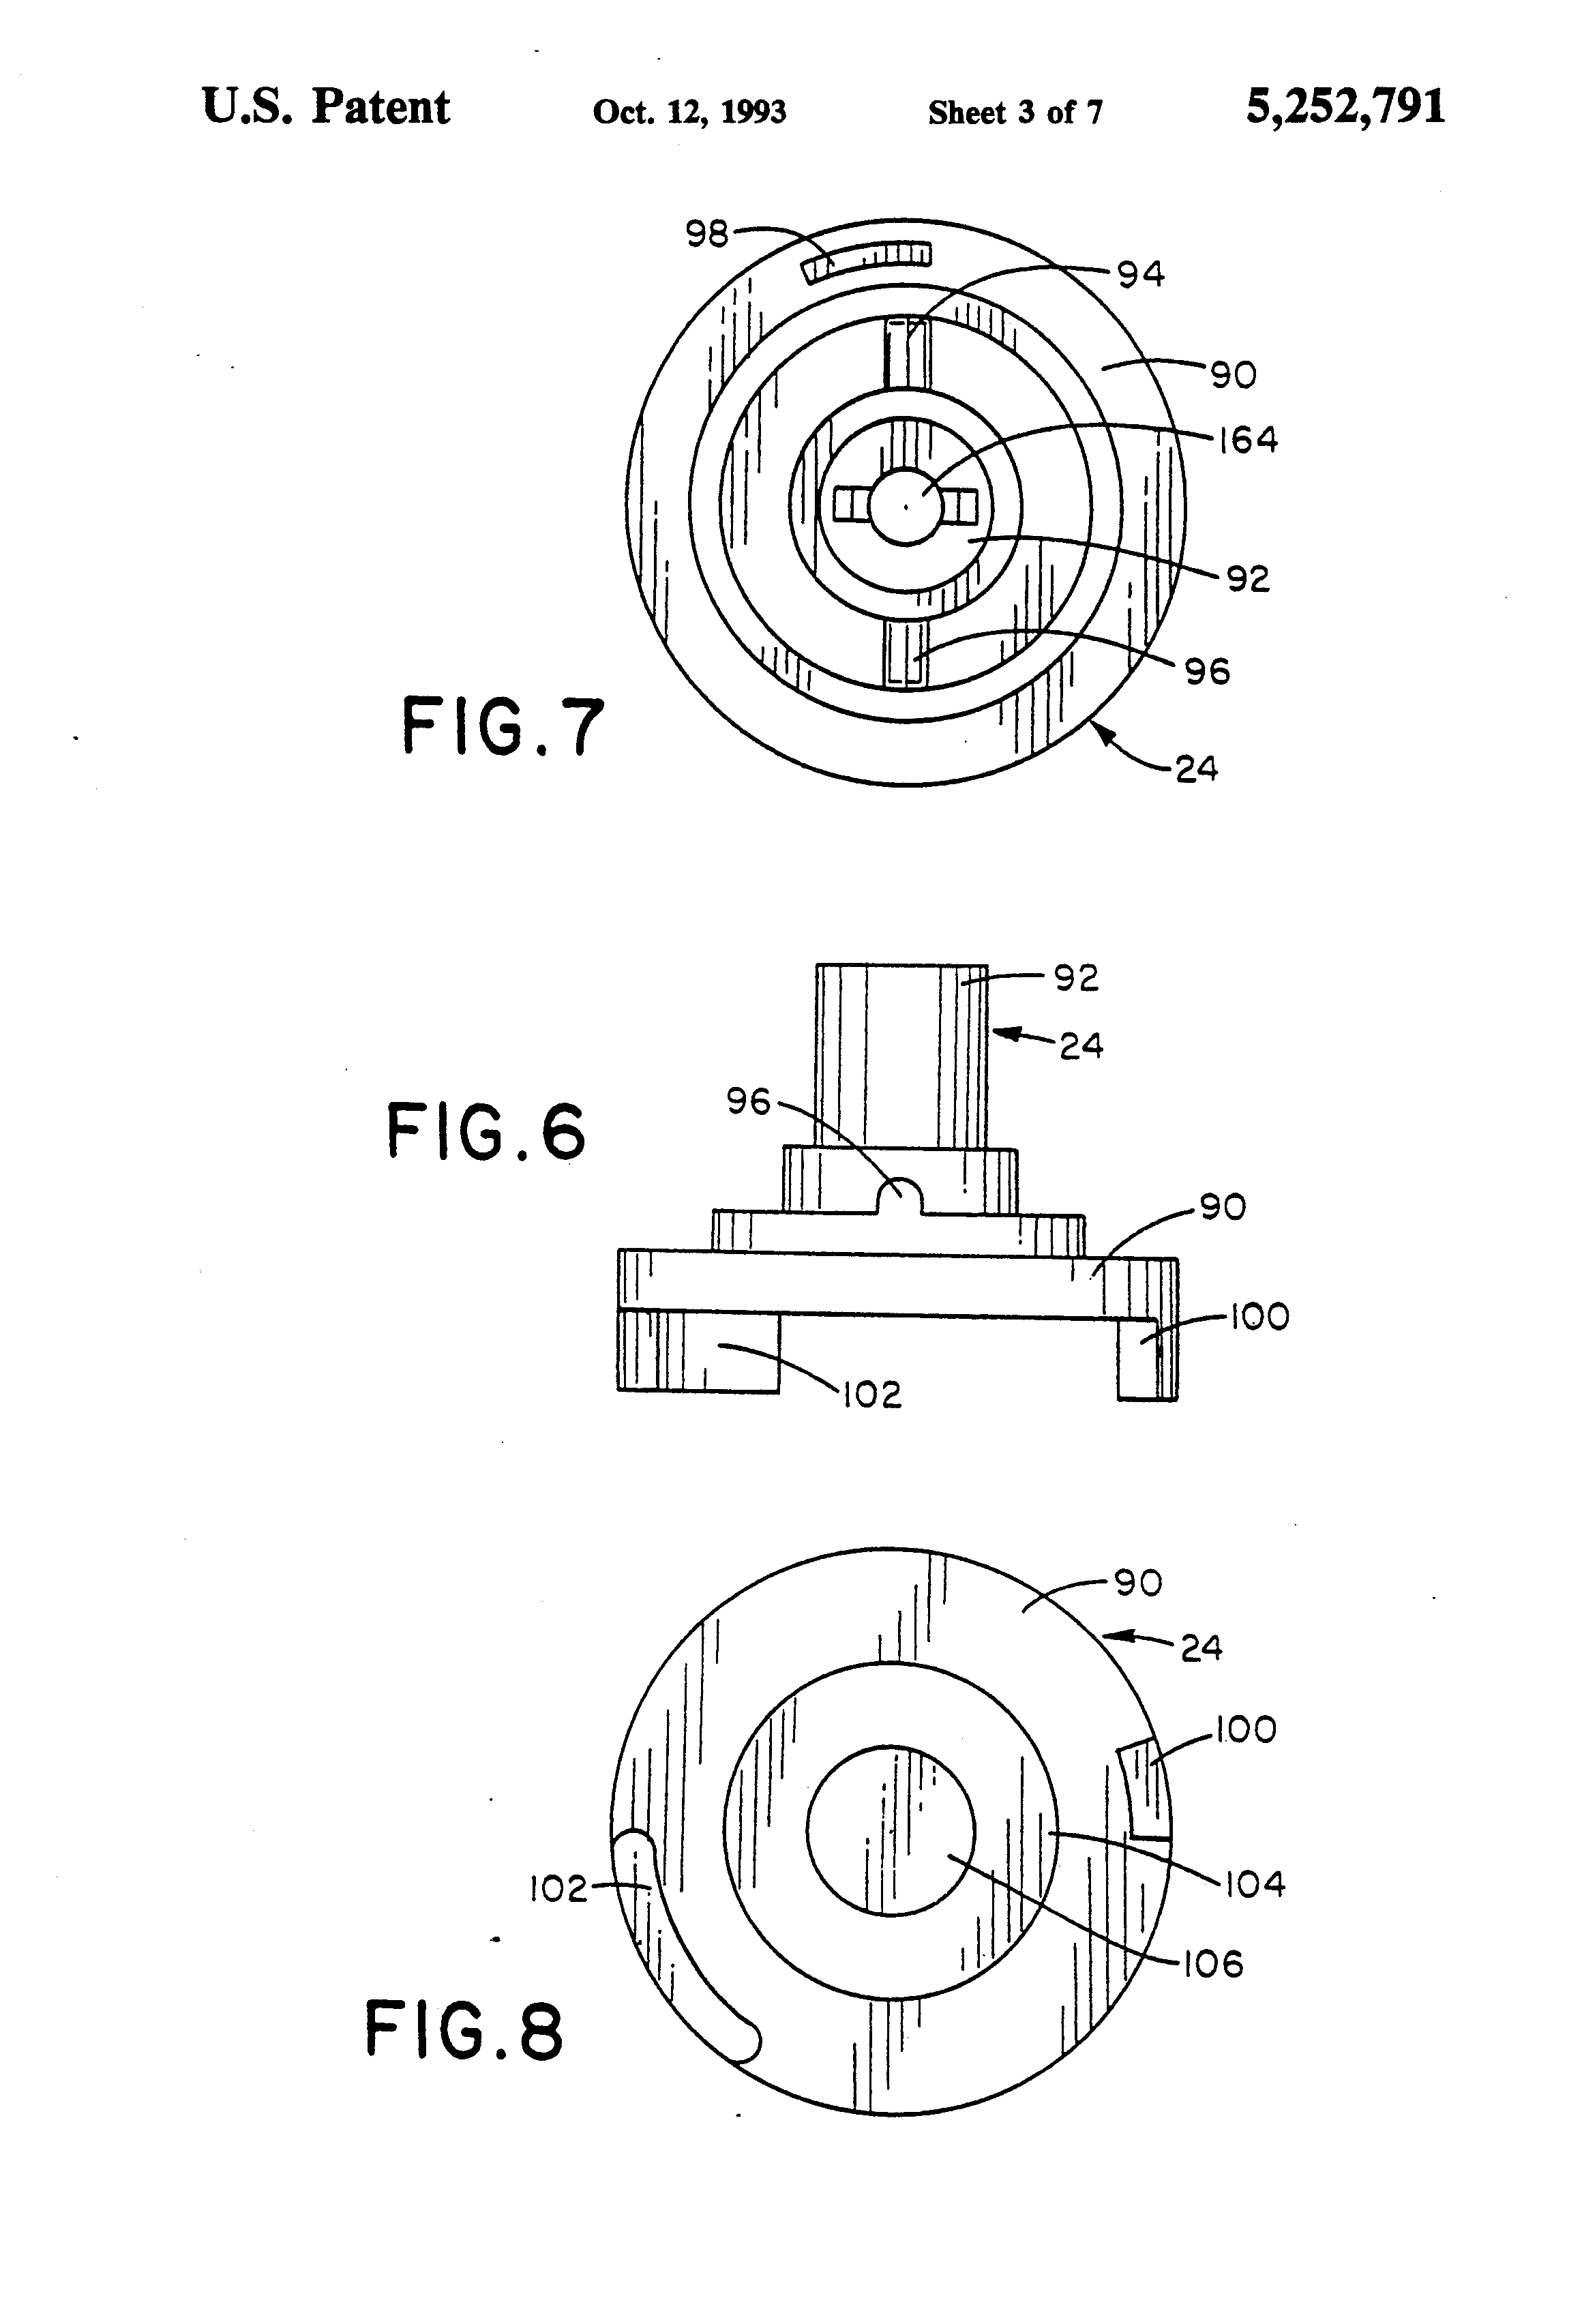 Delta Systems Ignition Switch Wiring Diagram 44 86 Oldsmobile 88 Chevy Alternator Us5252791 3 Patent Google Patents At Cita